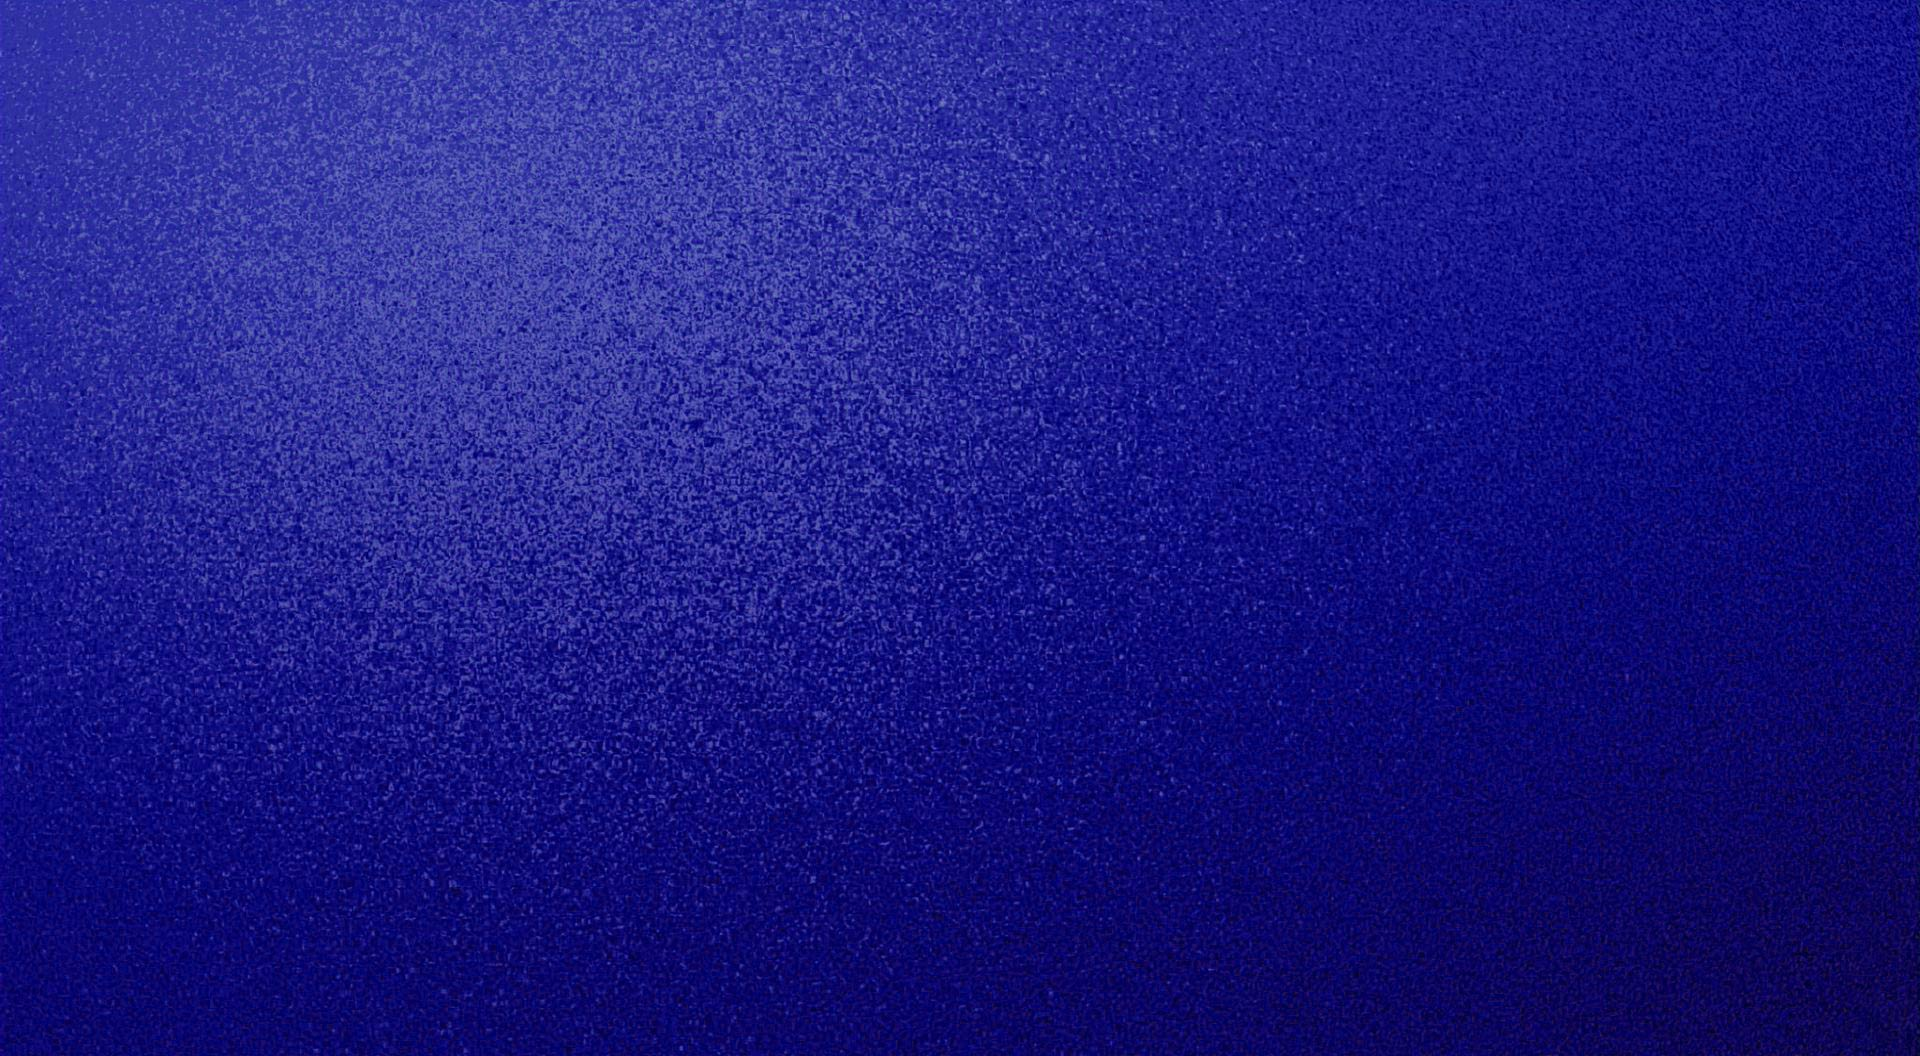 Dark blue backgrounds image wallpaper cave for 3d large wallpaper